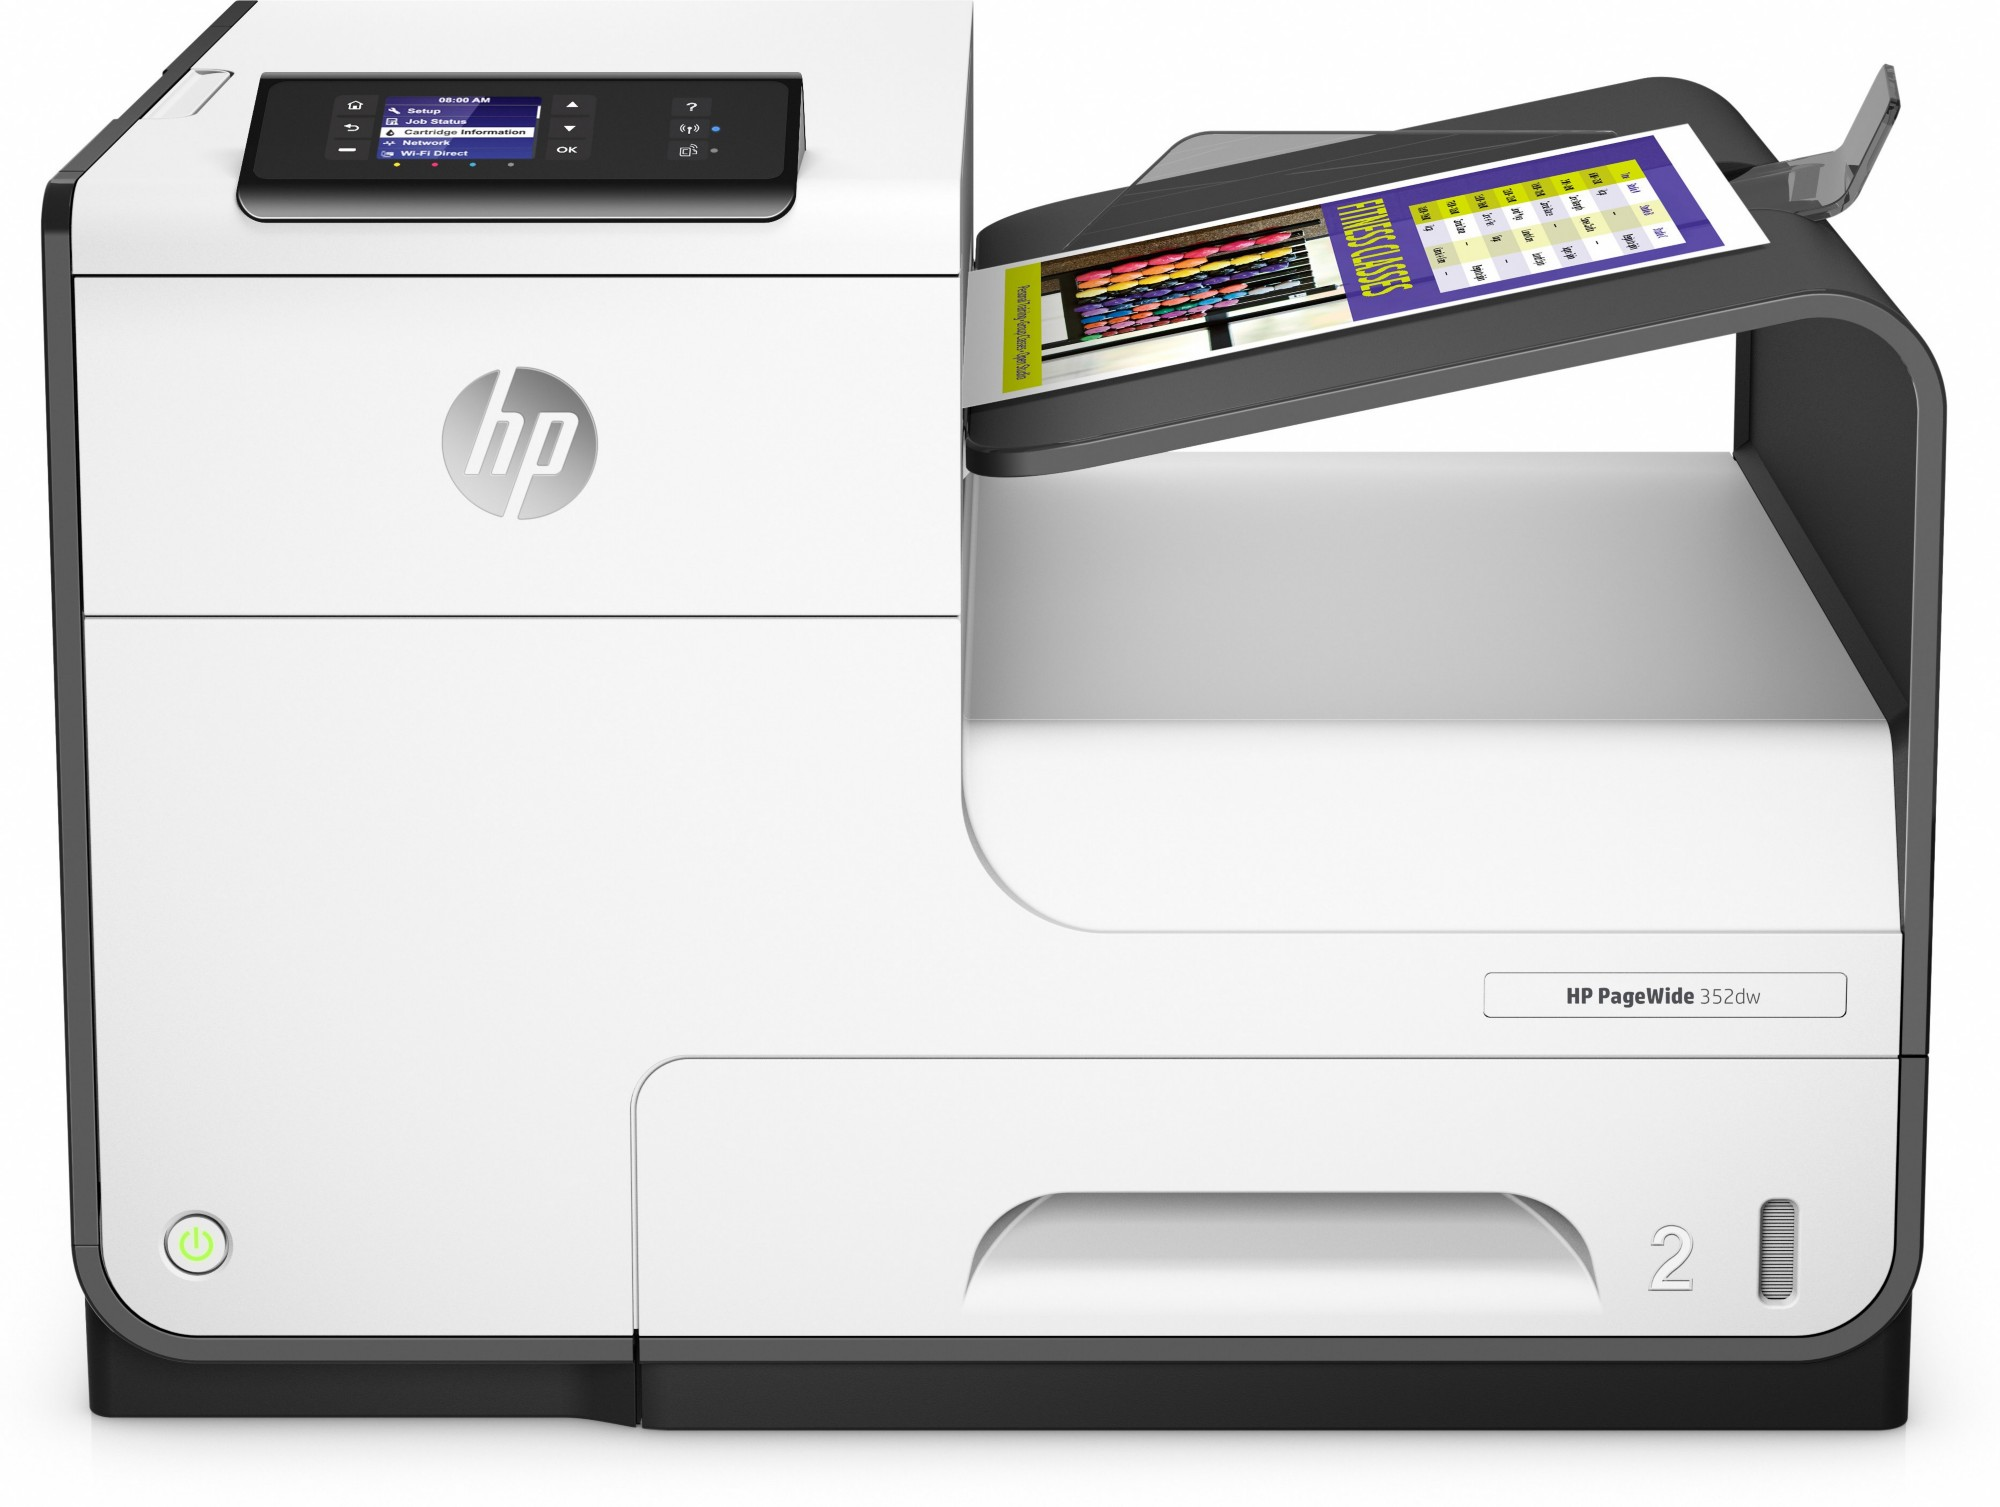 HP J6U57B PAGEWIDE 352DW COLOUR 2400 X 1200DPI A4 WI-FI INKJET PRINTER